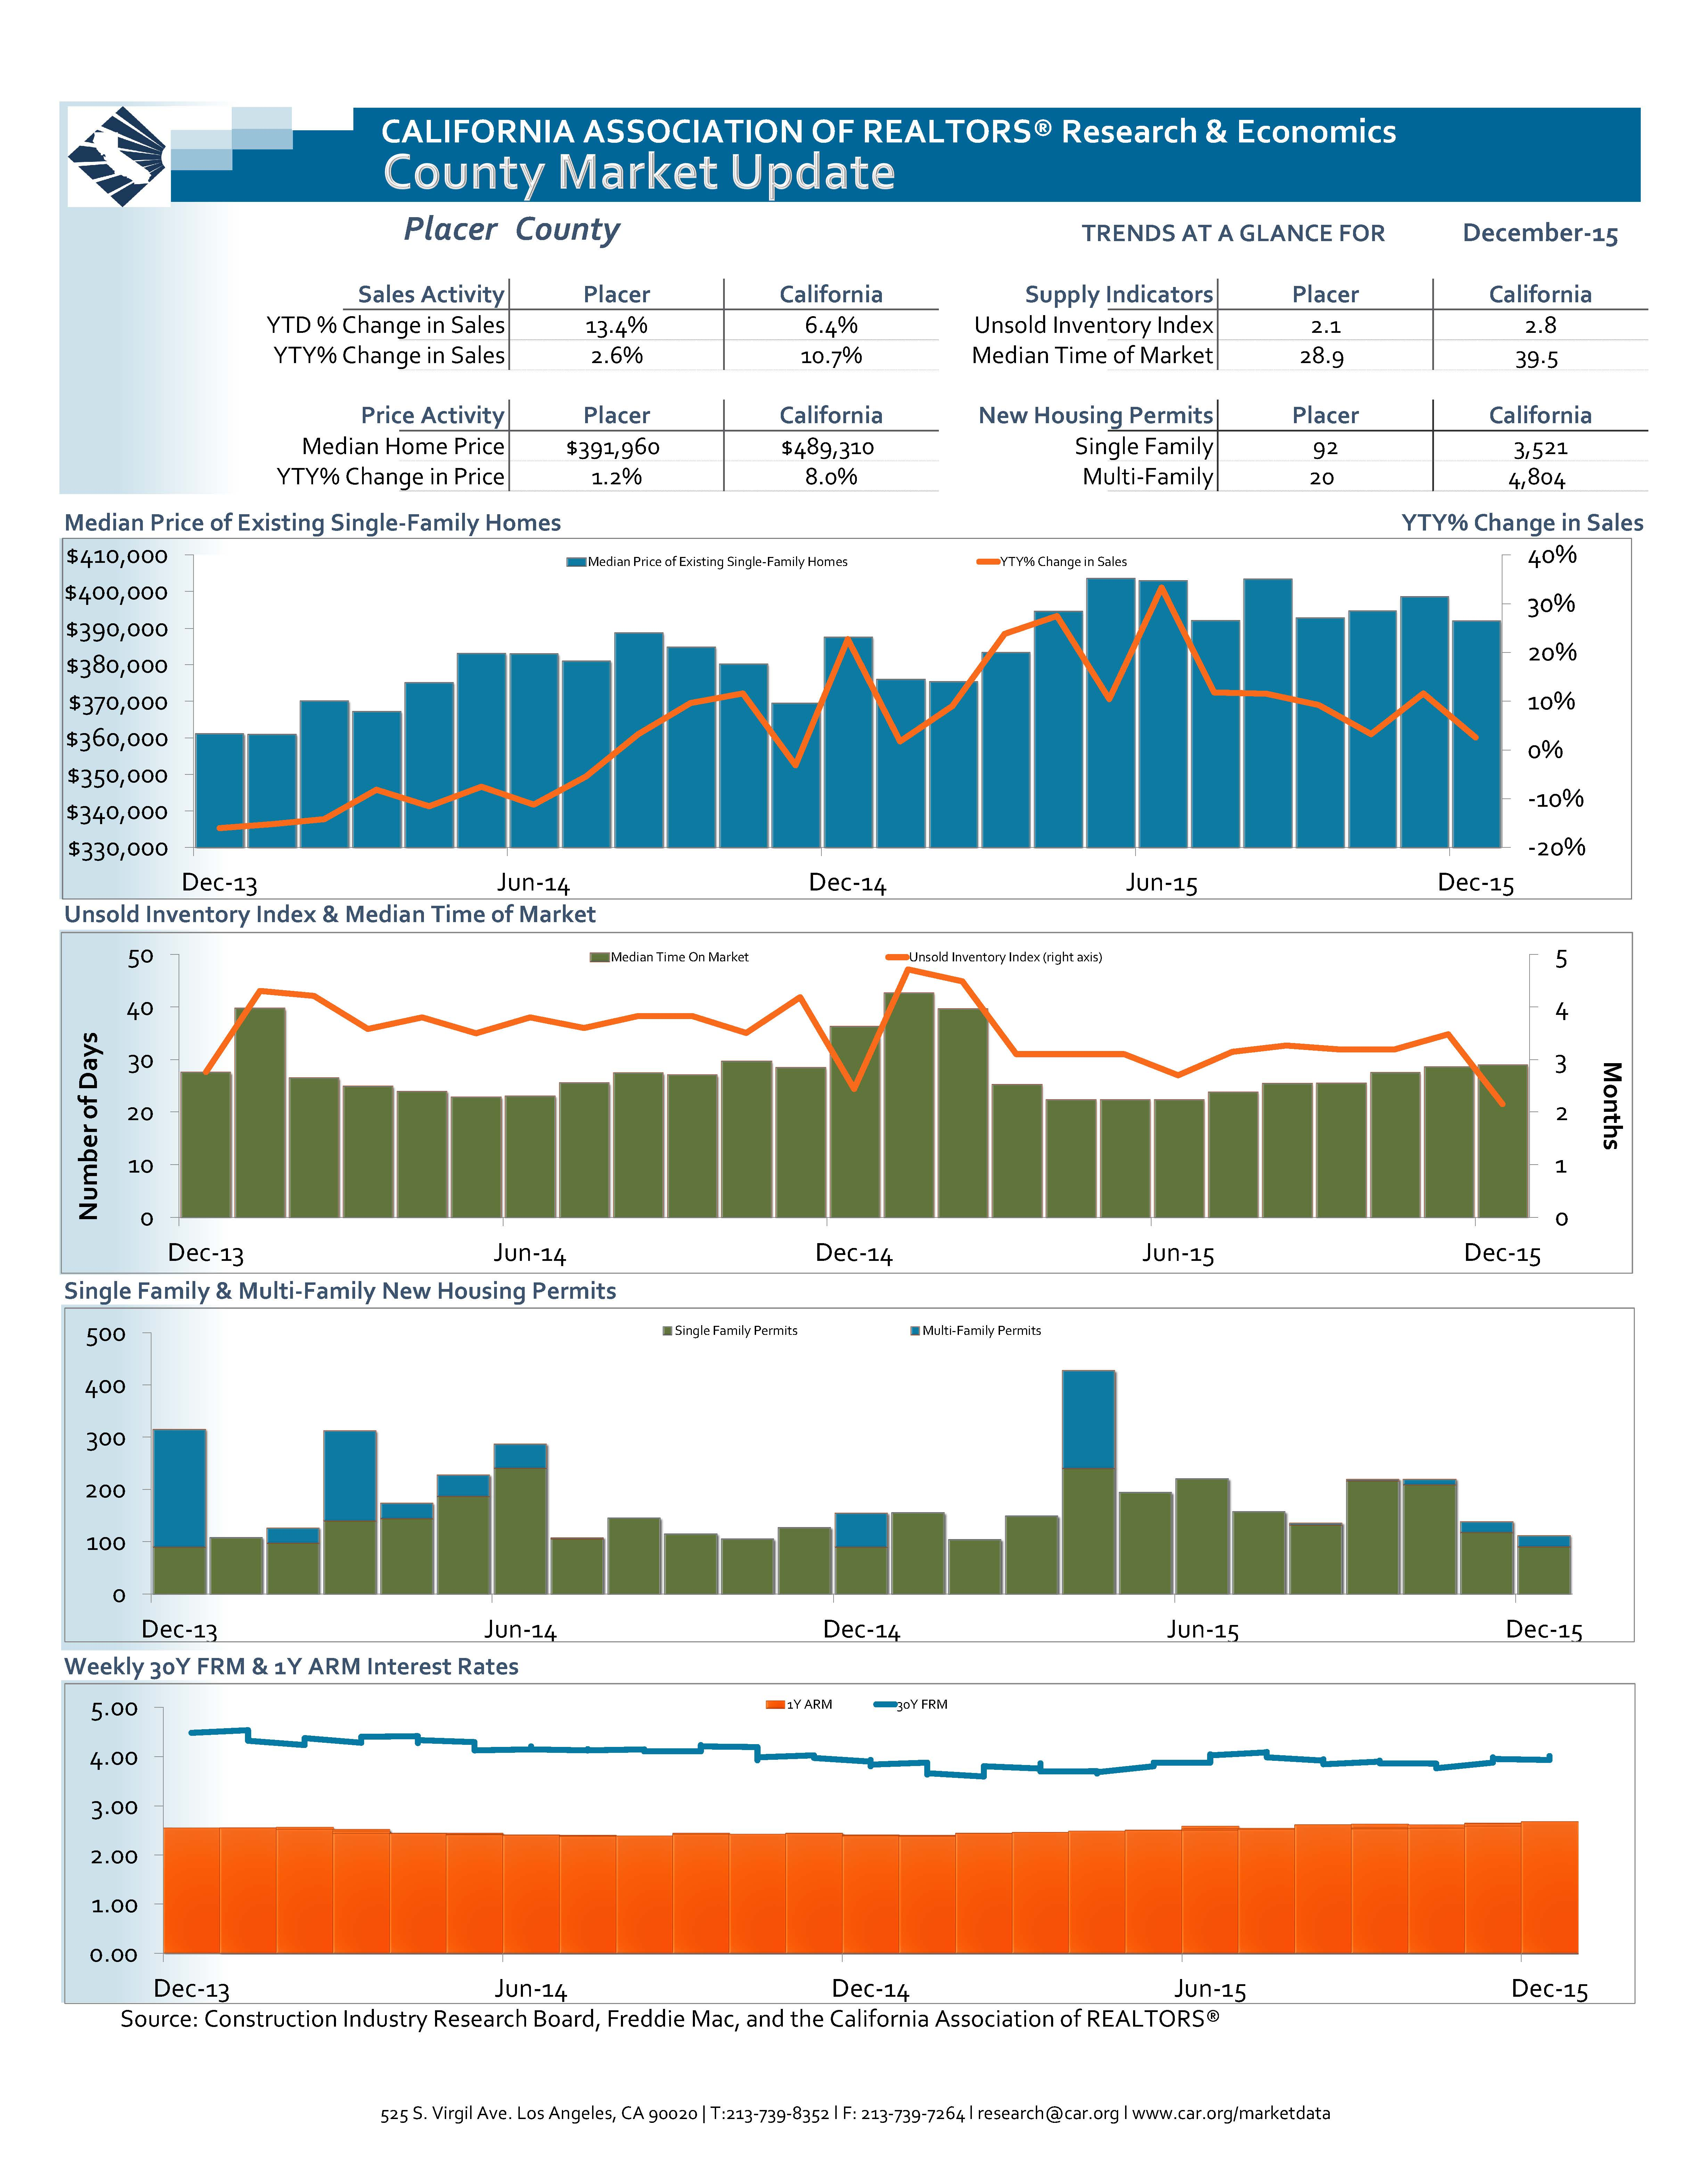 Placer County Real Estate Statistics - December 2015